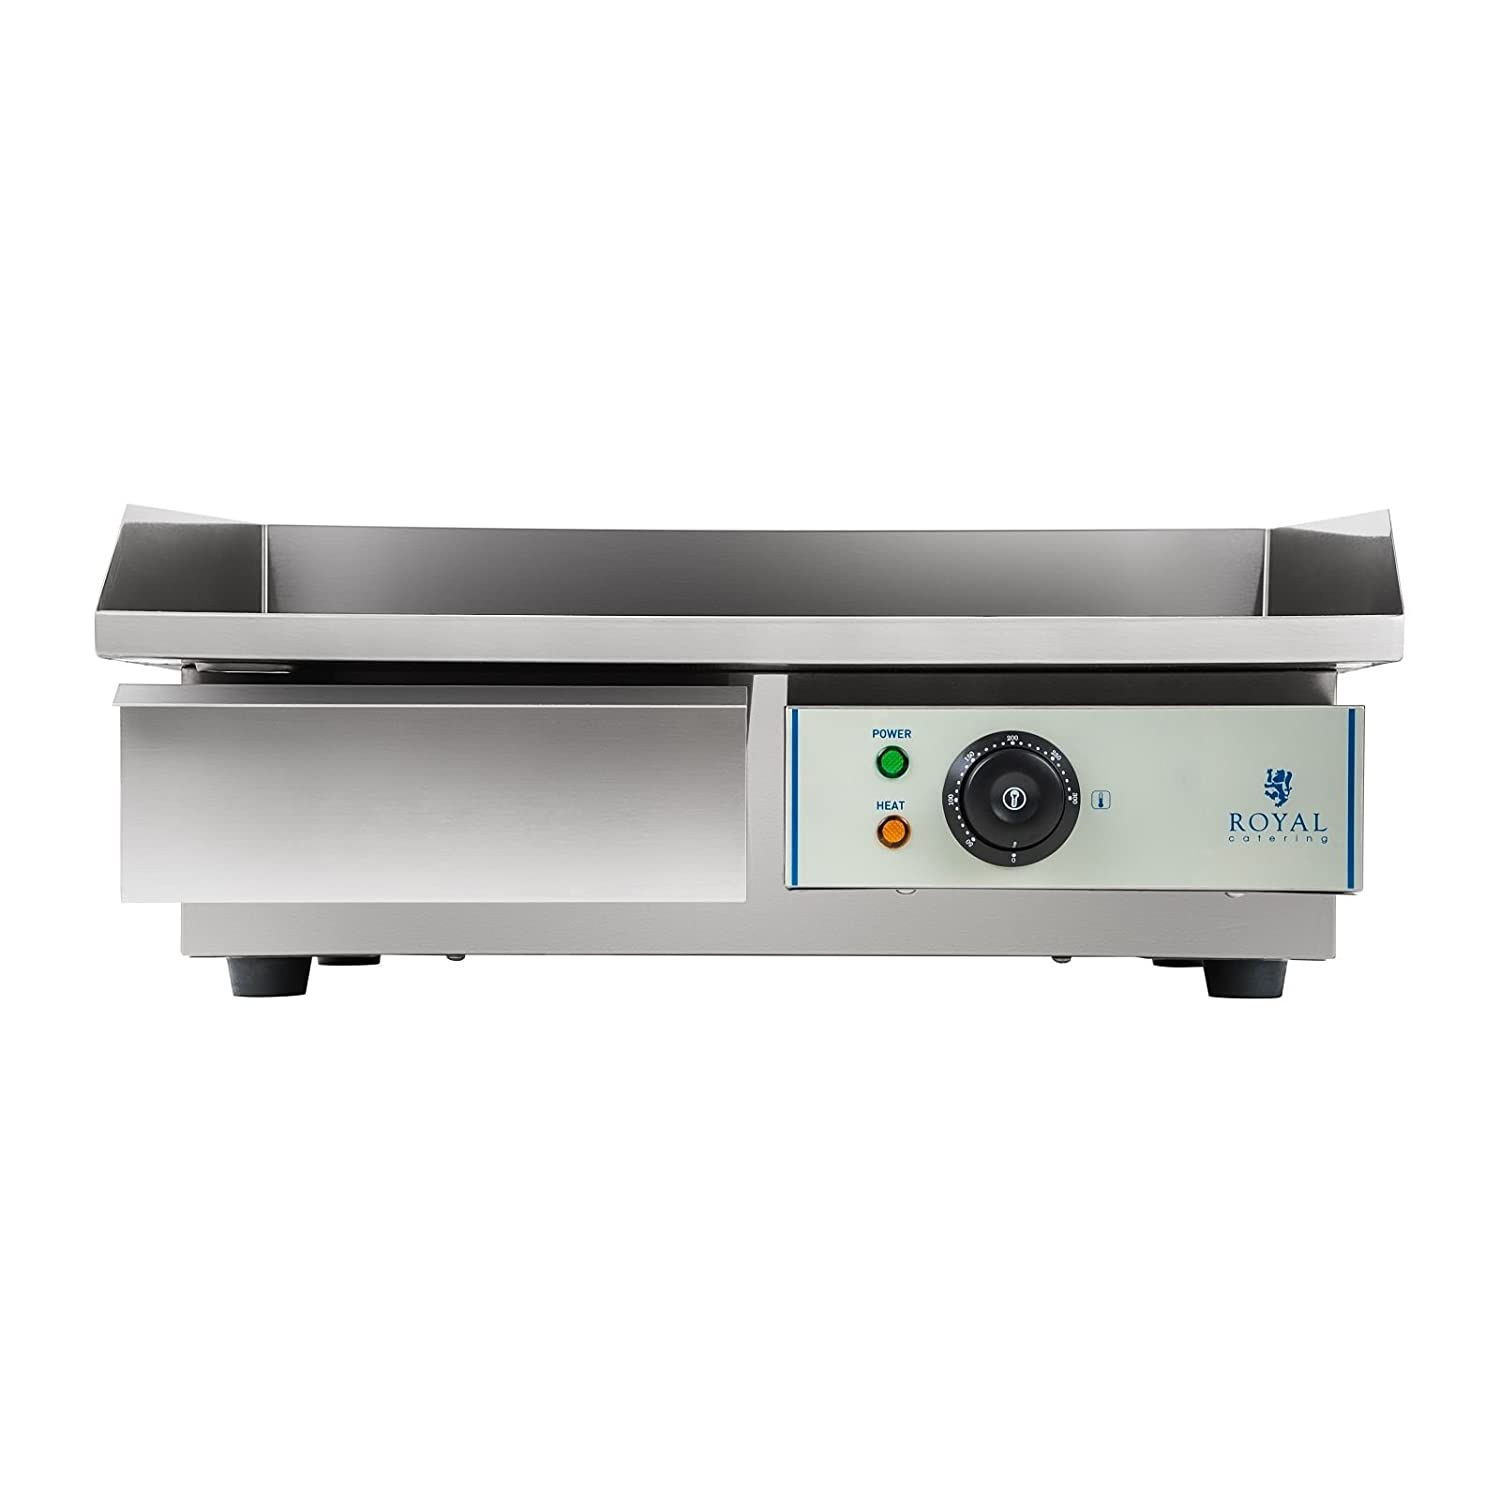 Royal Catering Plancha Grill Electrica Fry Top Parrilla Electrica Industrial RCEG-55 (3.000 W, Largo 55 cm, Superficie de calentamiento lisa, ...